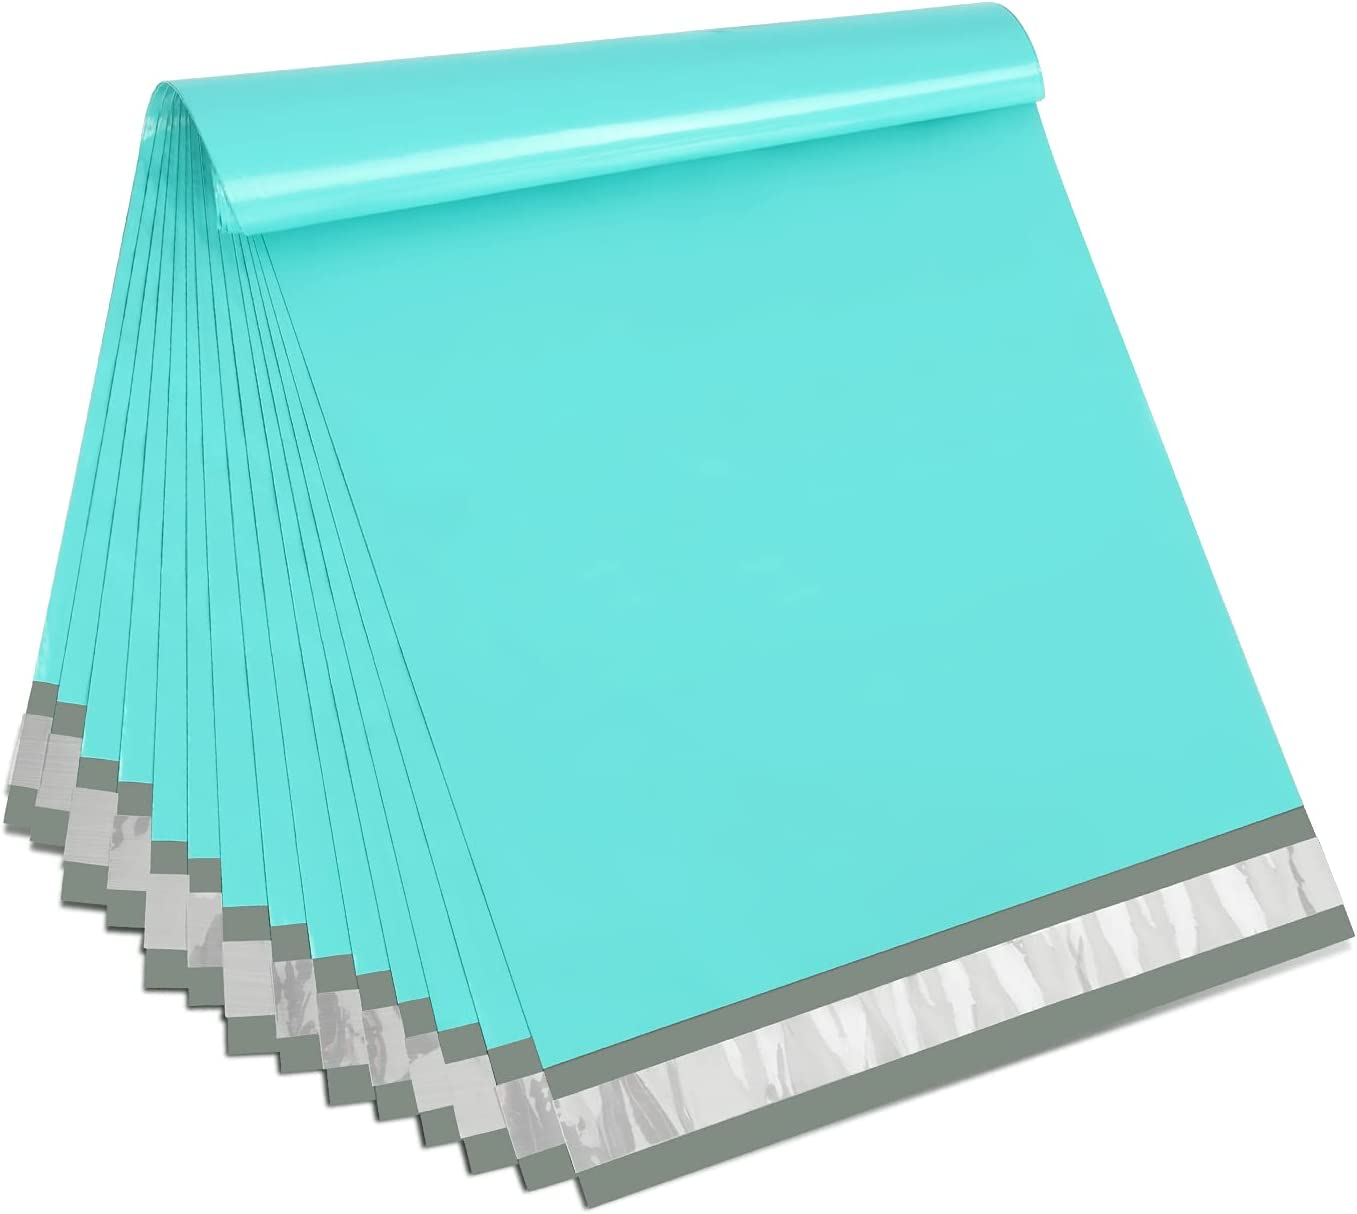 TOMVYTER safety 100PC Poly Mailers 12x16 Inch Great interest Mailing Envelopes Teal Ba